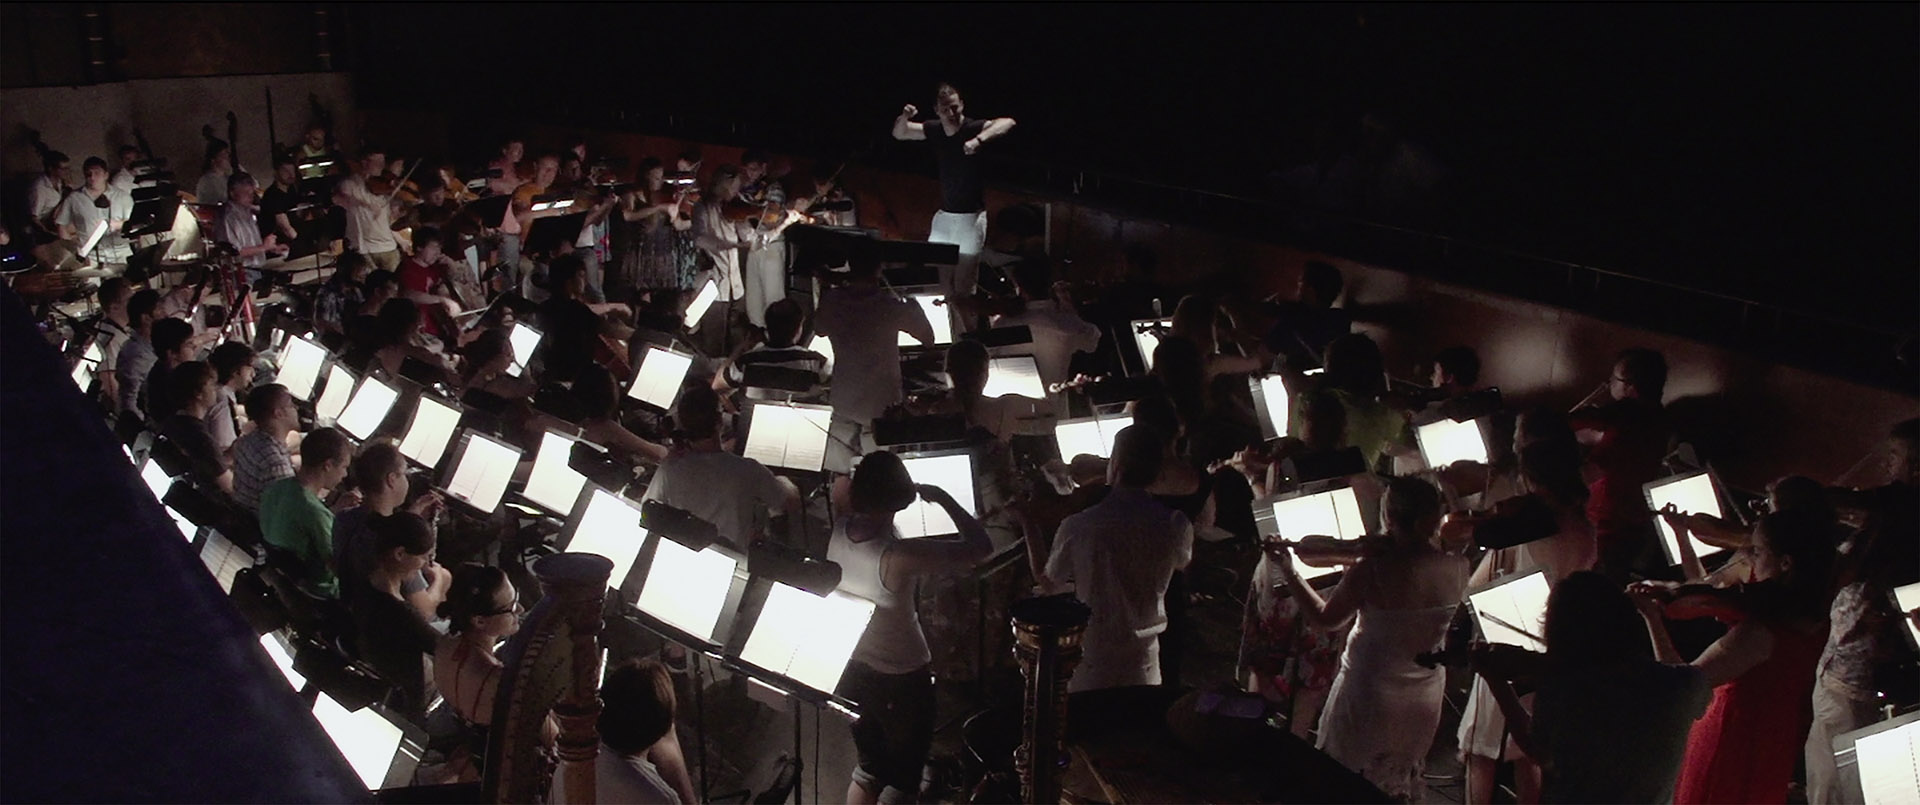 Petrushka — Conduction — A film featuring Teodor Currentzis